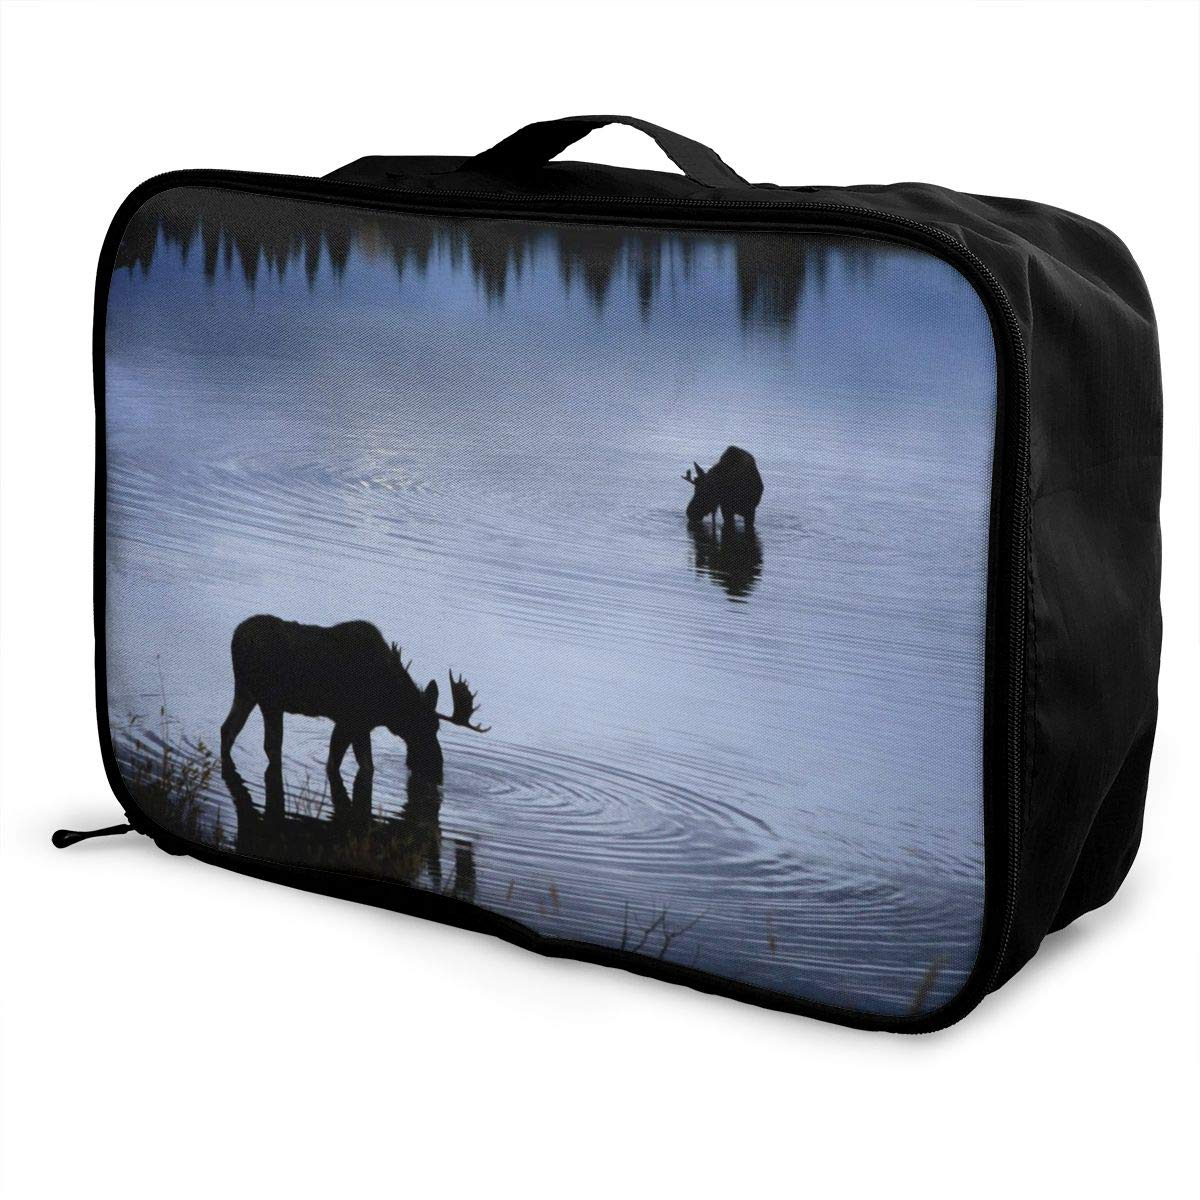 Moose Drinking Water Travel Lightweight Storage Carry Luggage Duffle Tote Bag